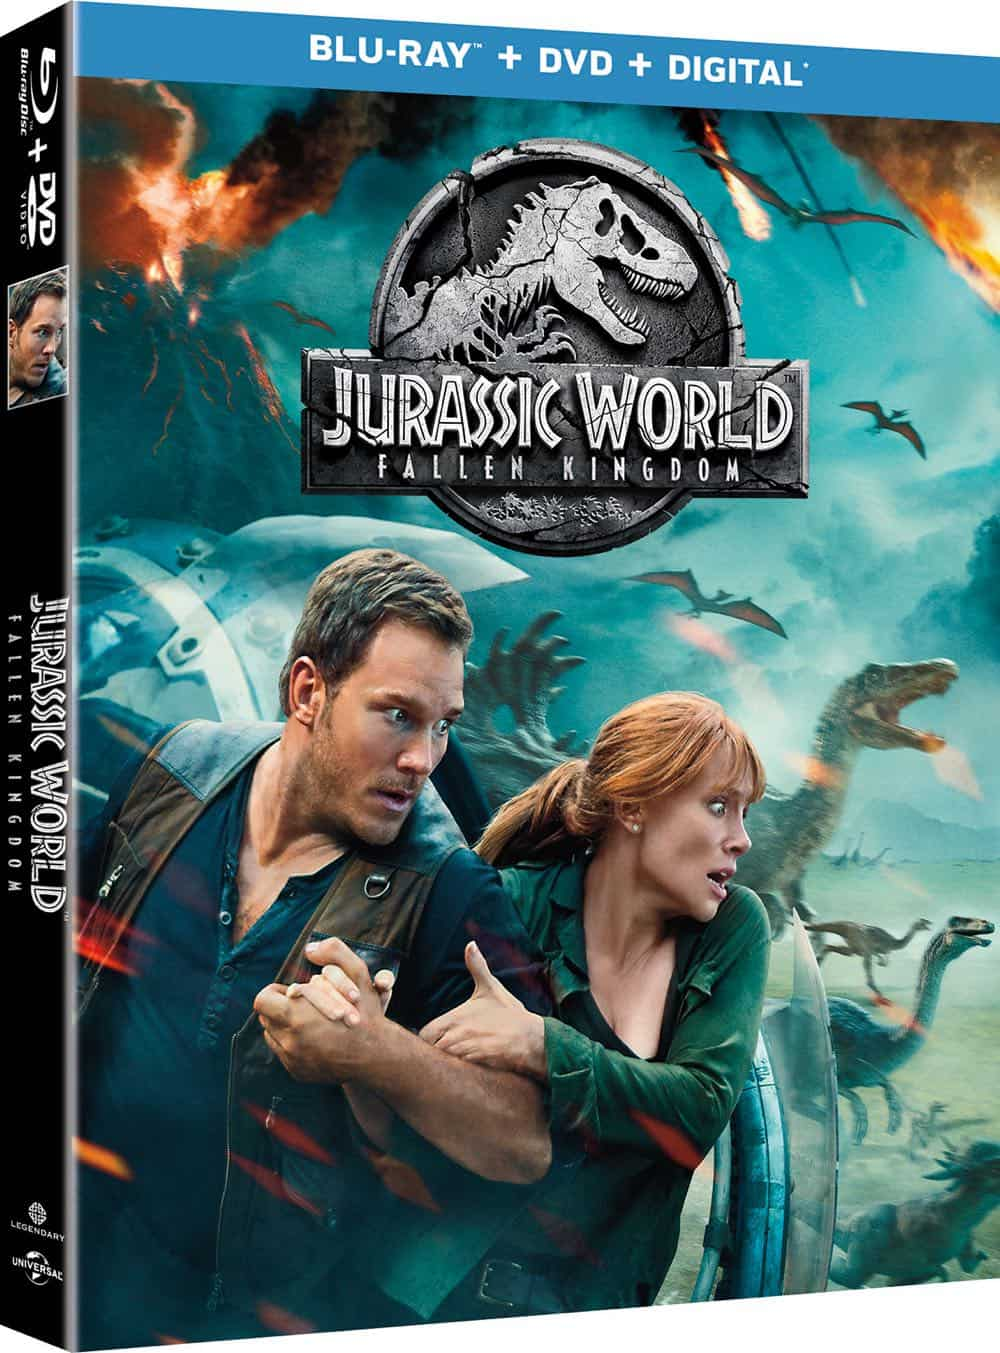 Jurassic-World-Fallen-Kingdom-3D-BD-Box-Art